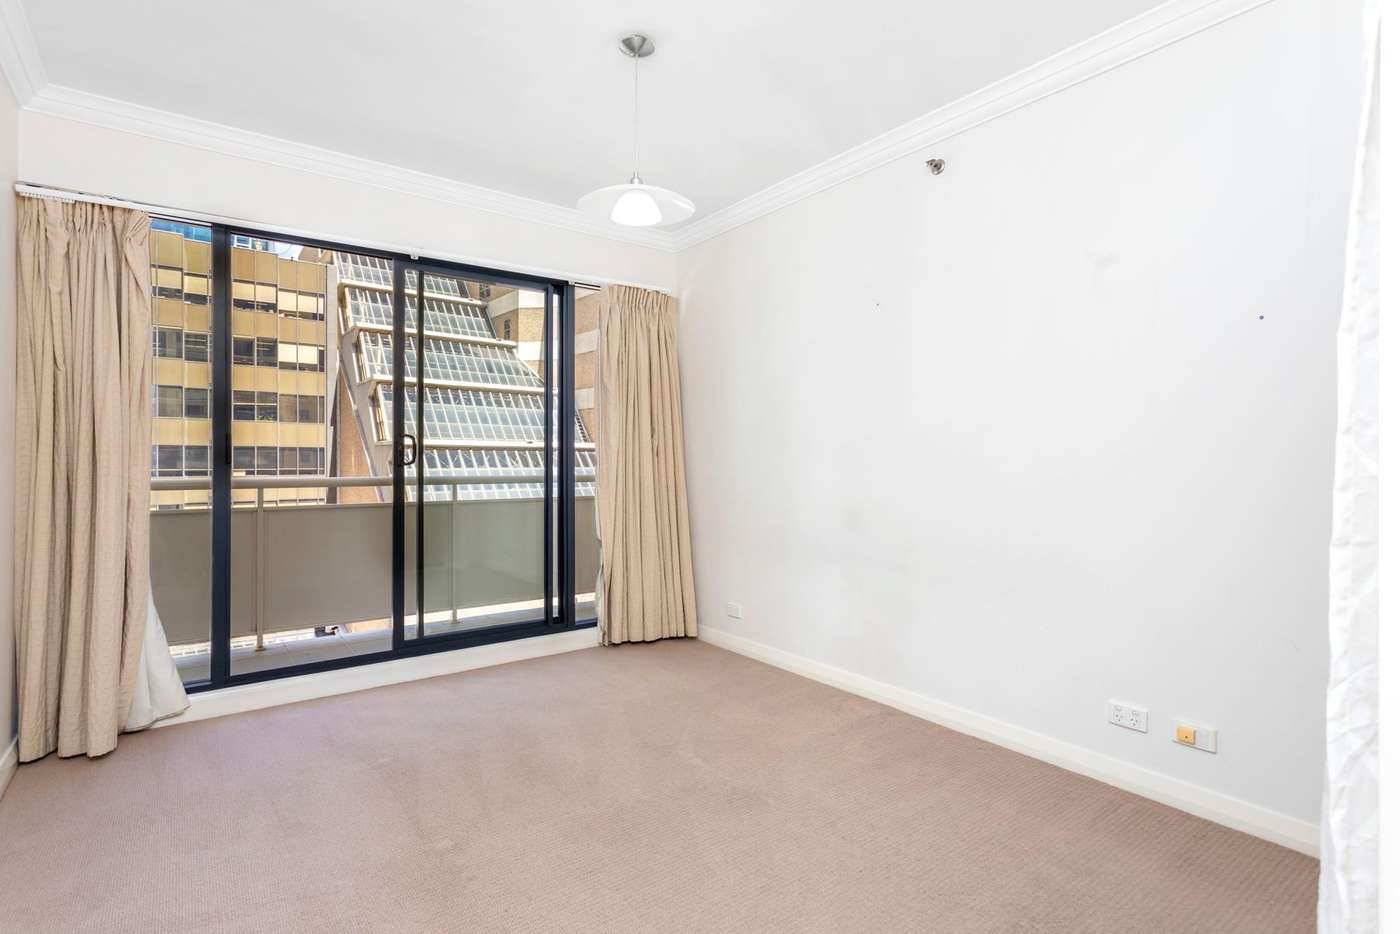 Sixth view of Homely apartment listing, 5D/811 Hay Street, Perth WA 6000